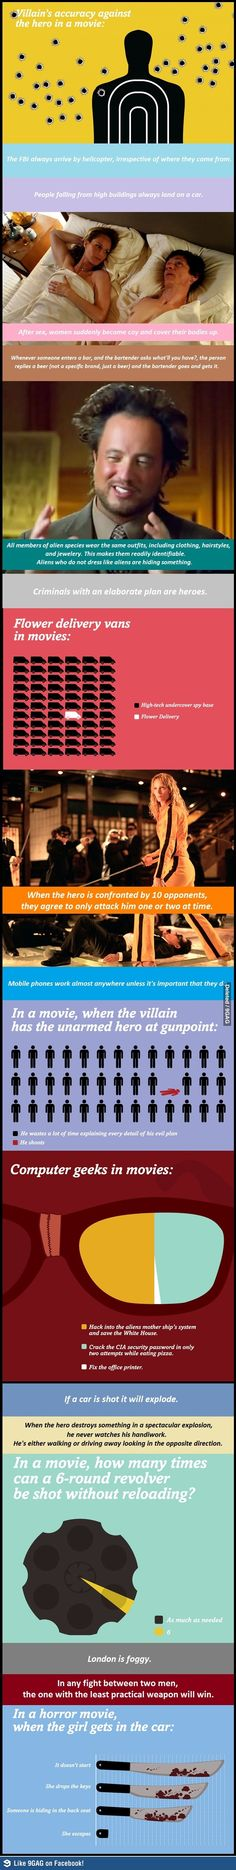 Movie facts. I've always wondered what the point was of the chick covering up after the sex scene...